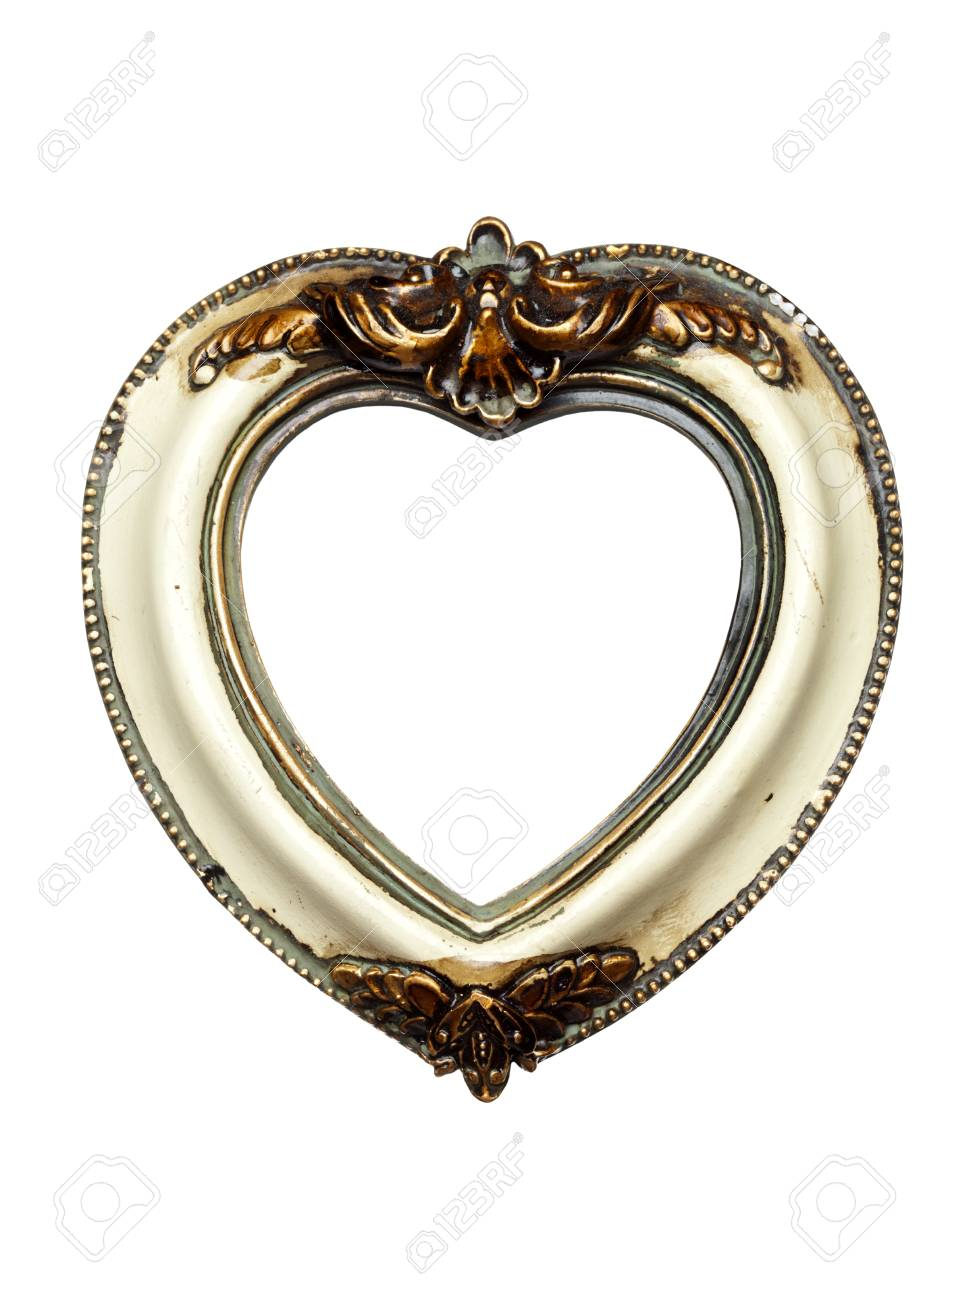 Heart Shaped Baroque Picture Frame Isolated On White Stock Photo ...